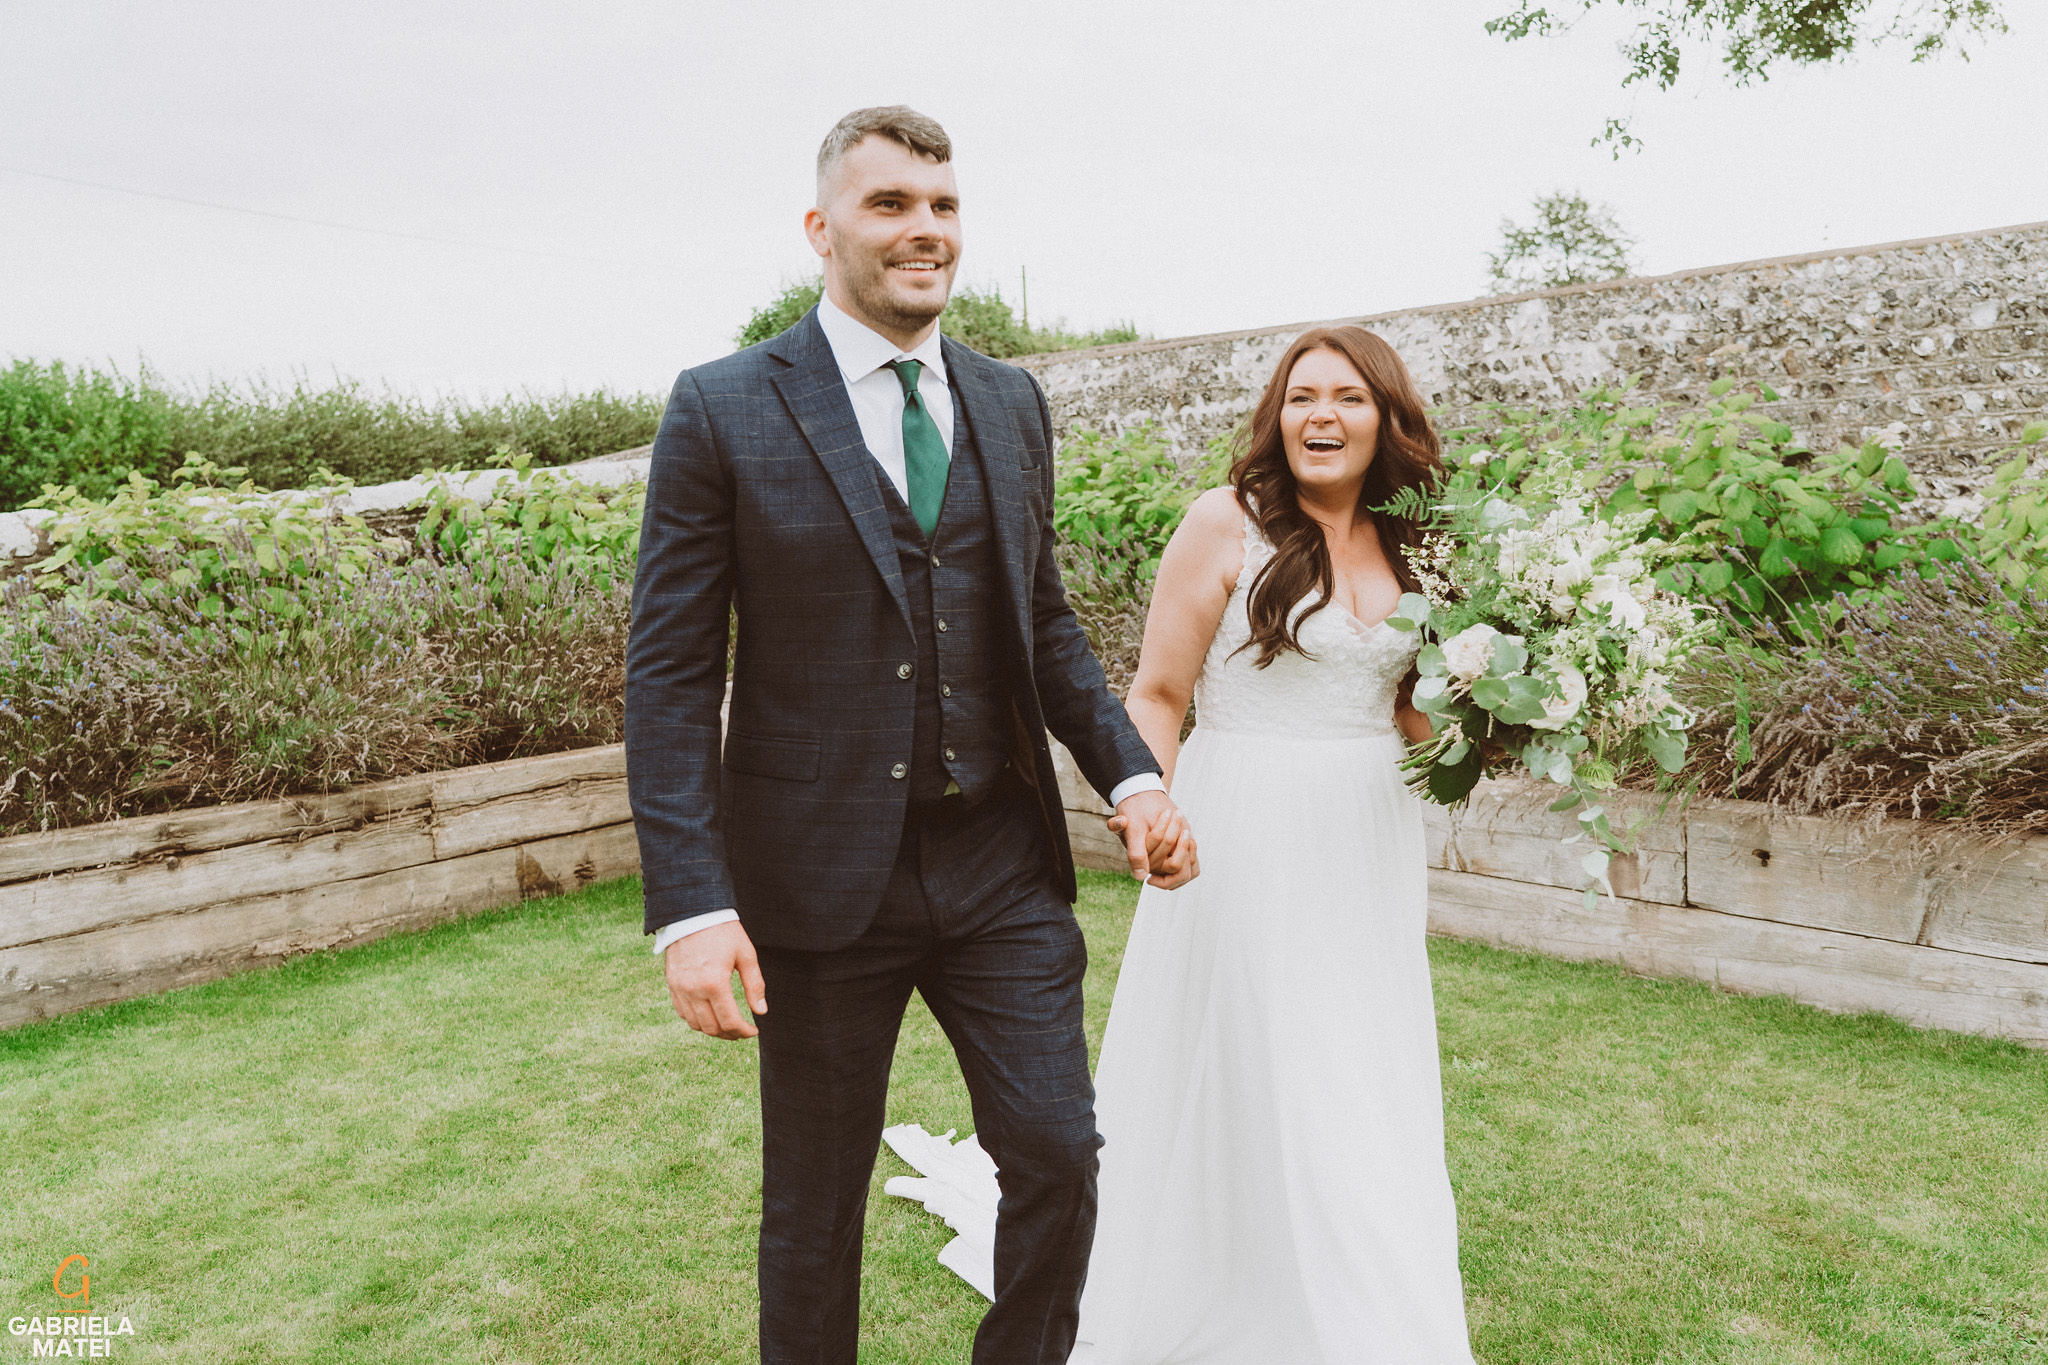 Bride and groom walking hand in hand laughing at South Stoke Barn wedding venue in Arundel by gabriela matei sussex photographer